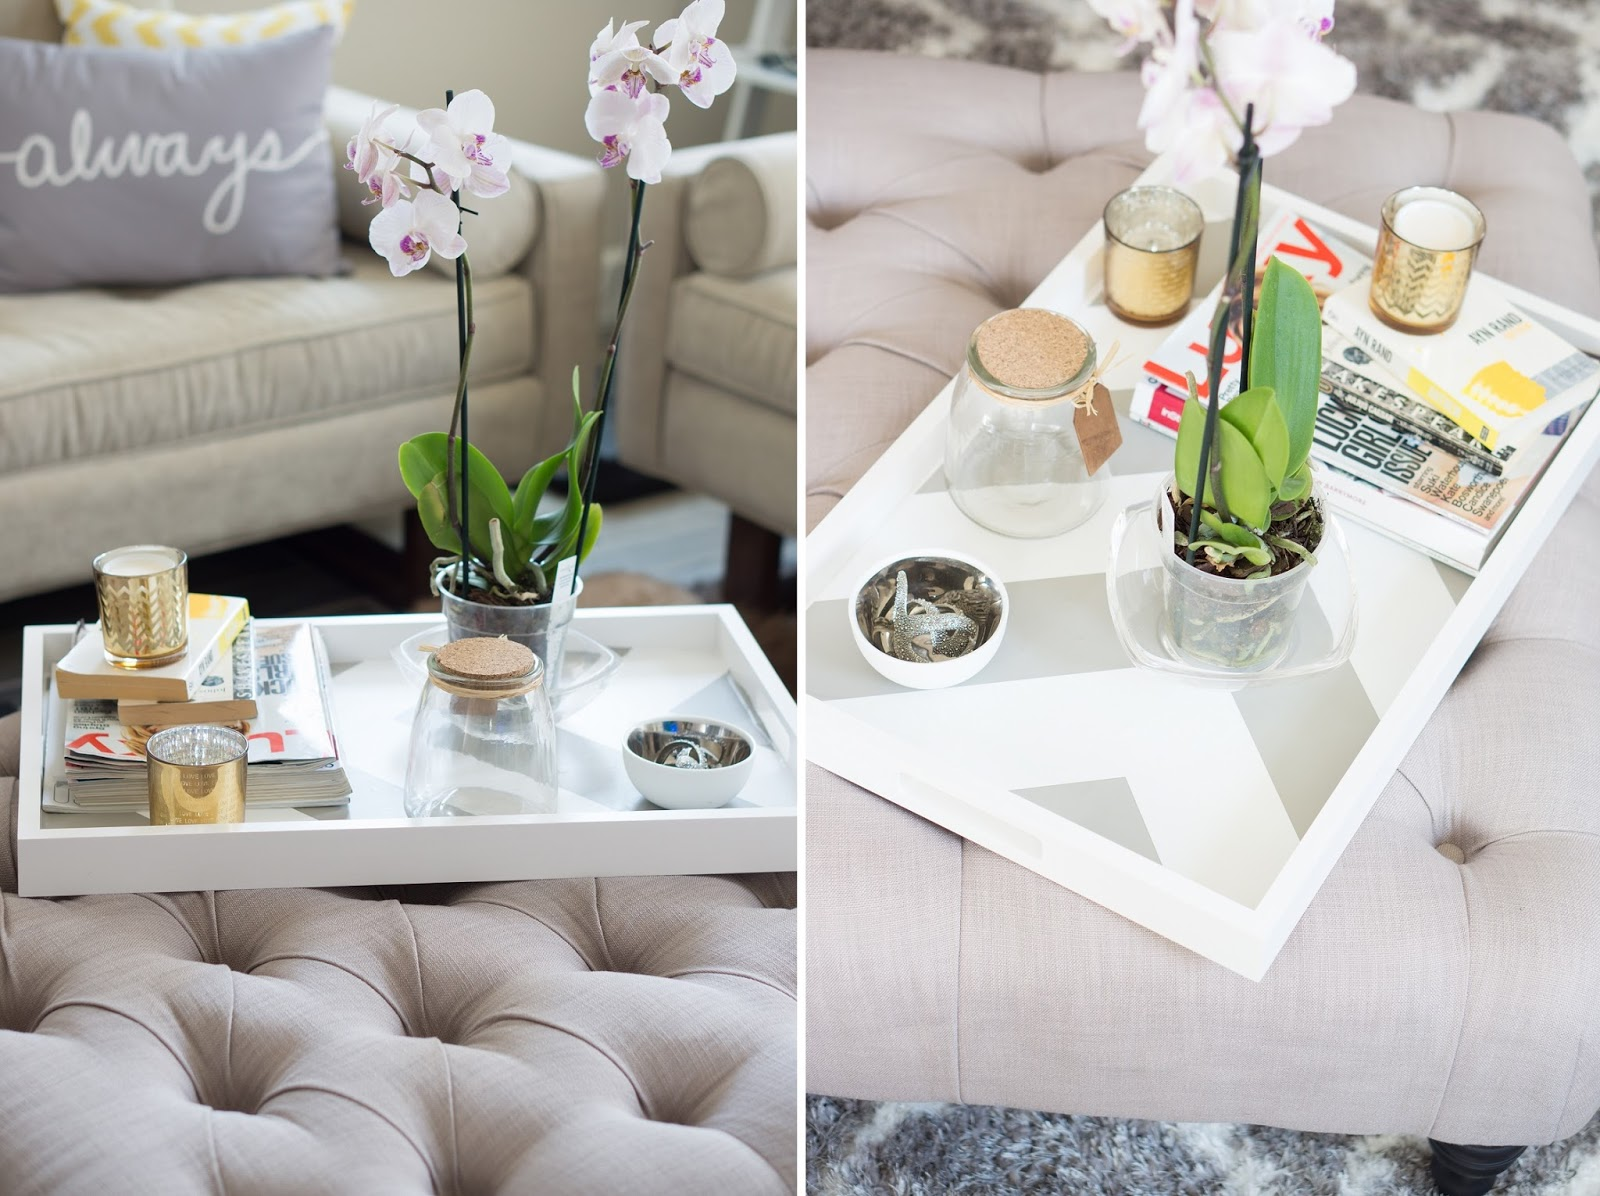 Captivating Inspiring Style: DIY Coffee Table Tray